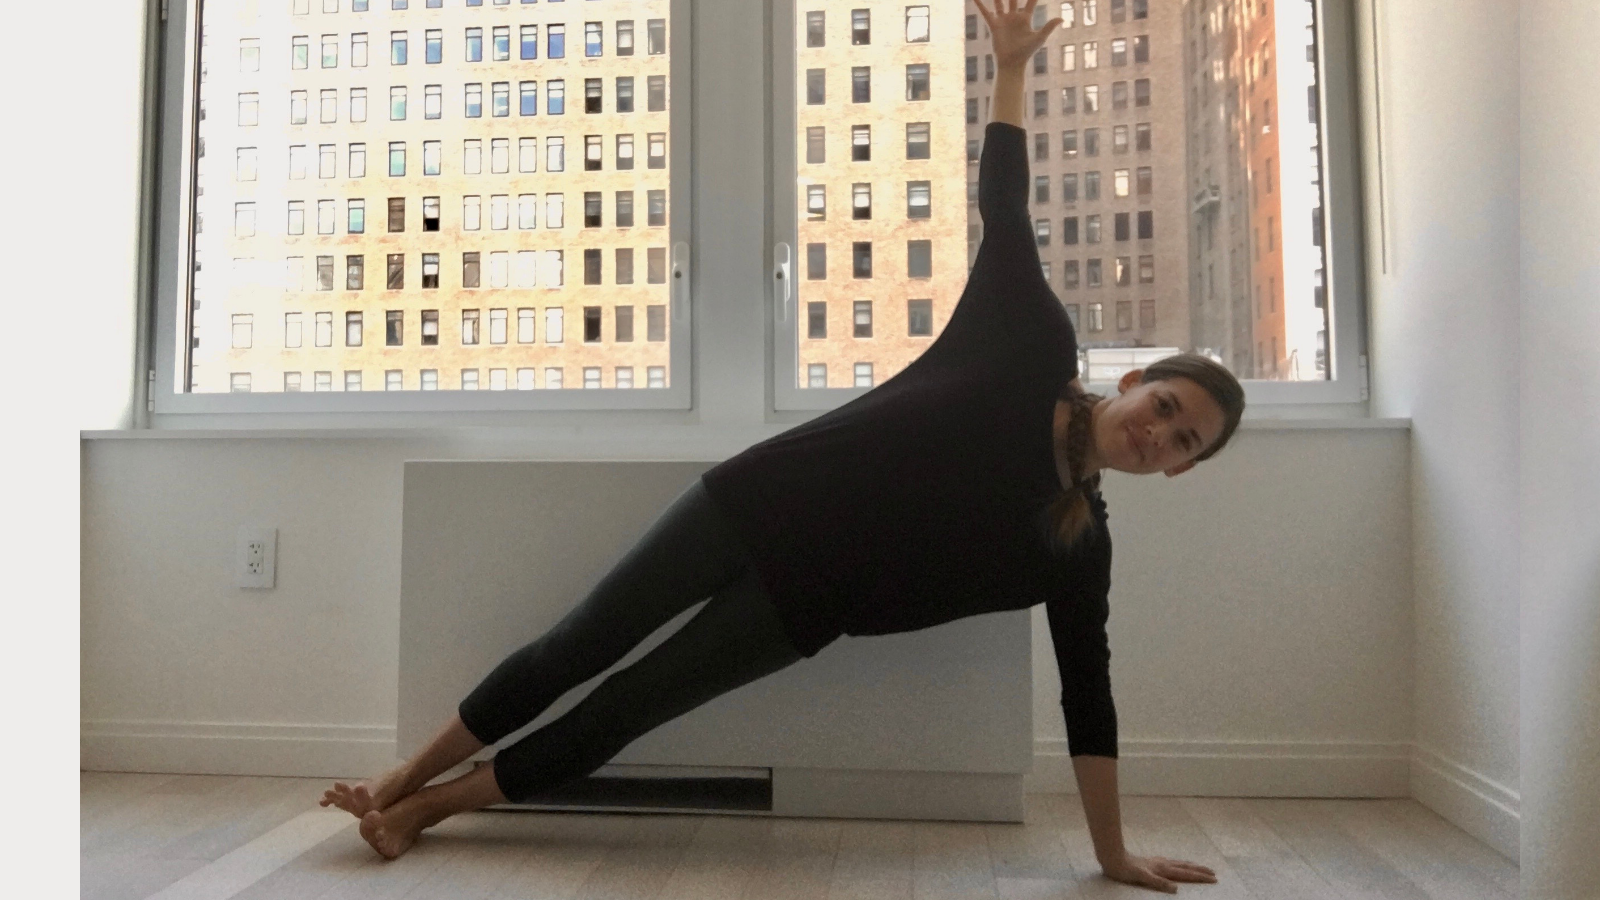 Yoga practice tips for Side Plank Pose (Vasisthasana) for building strength and stability in the core